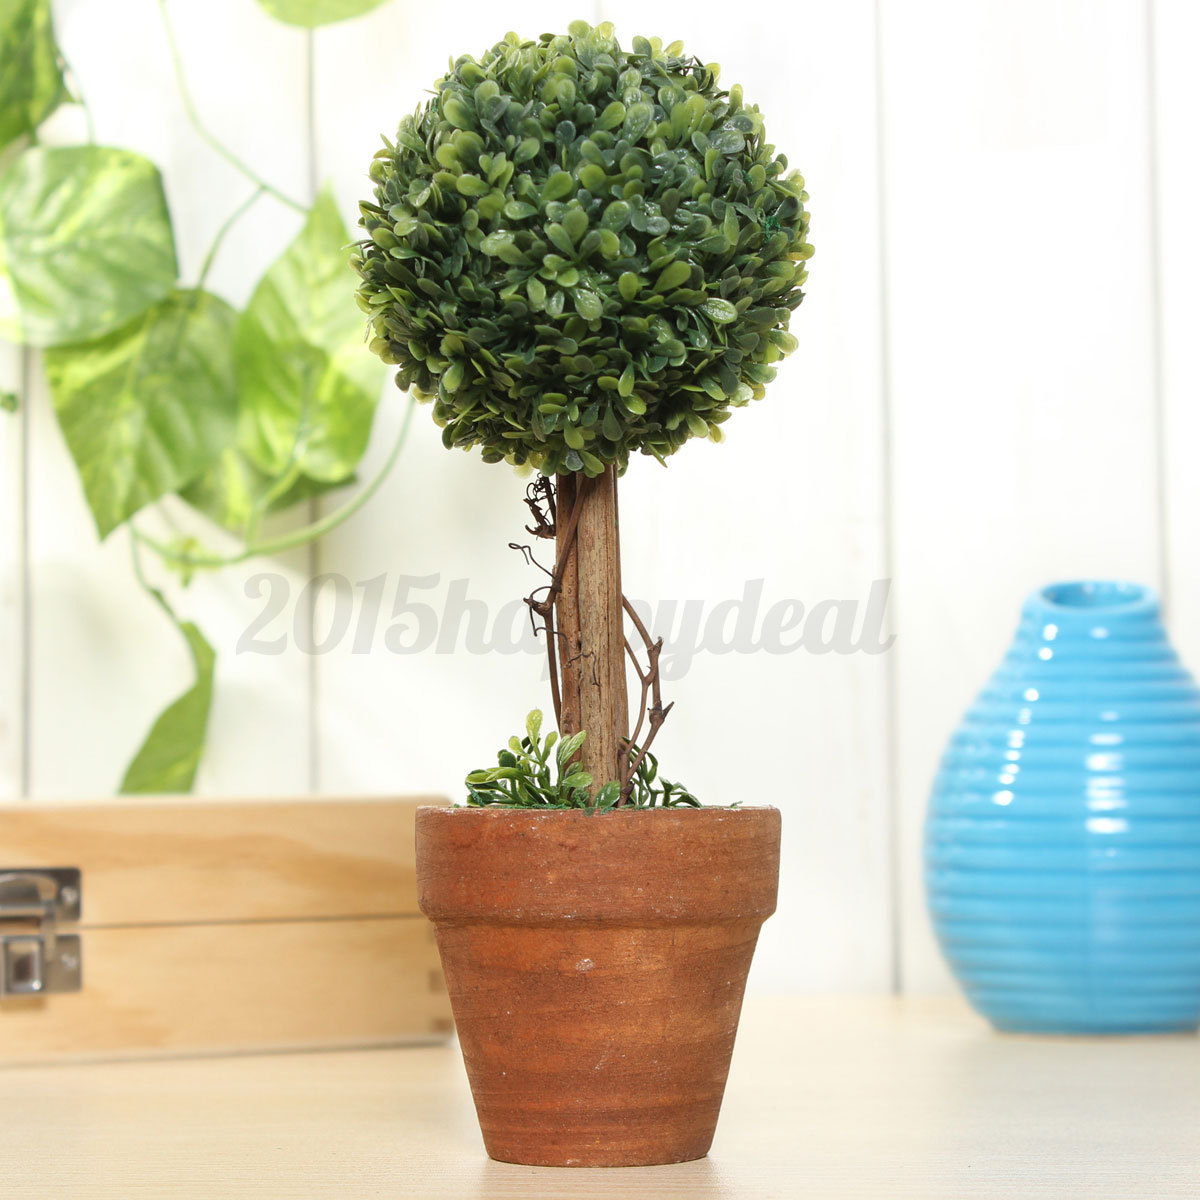 Plastic garden grass ball topiary tree pot dried green for Garden topiary trees